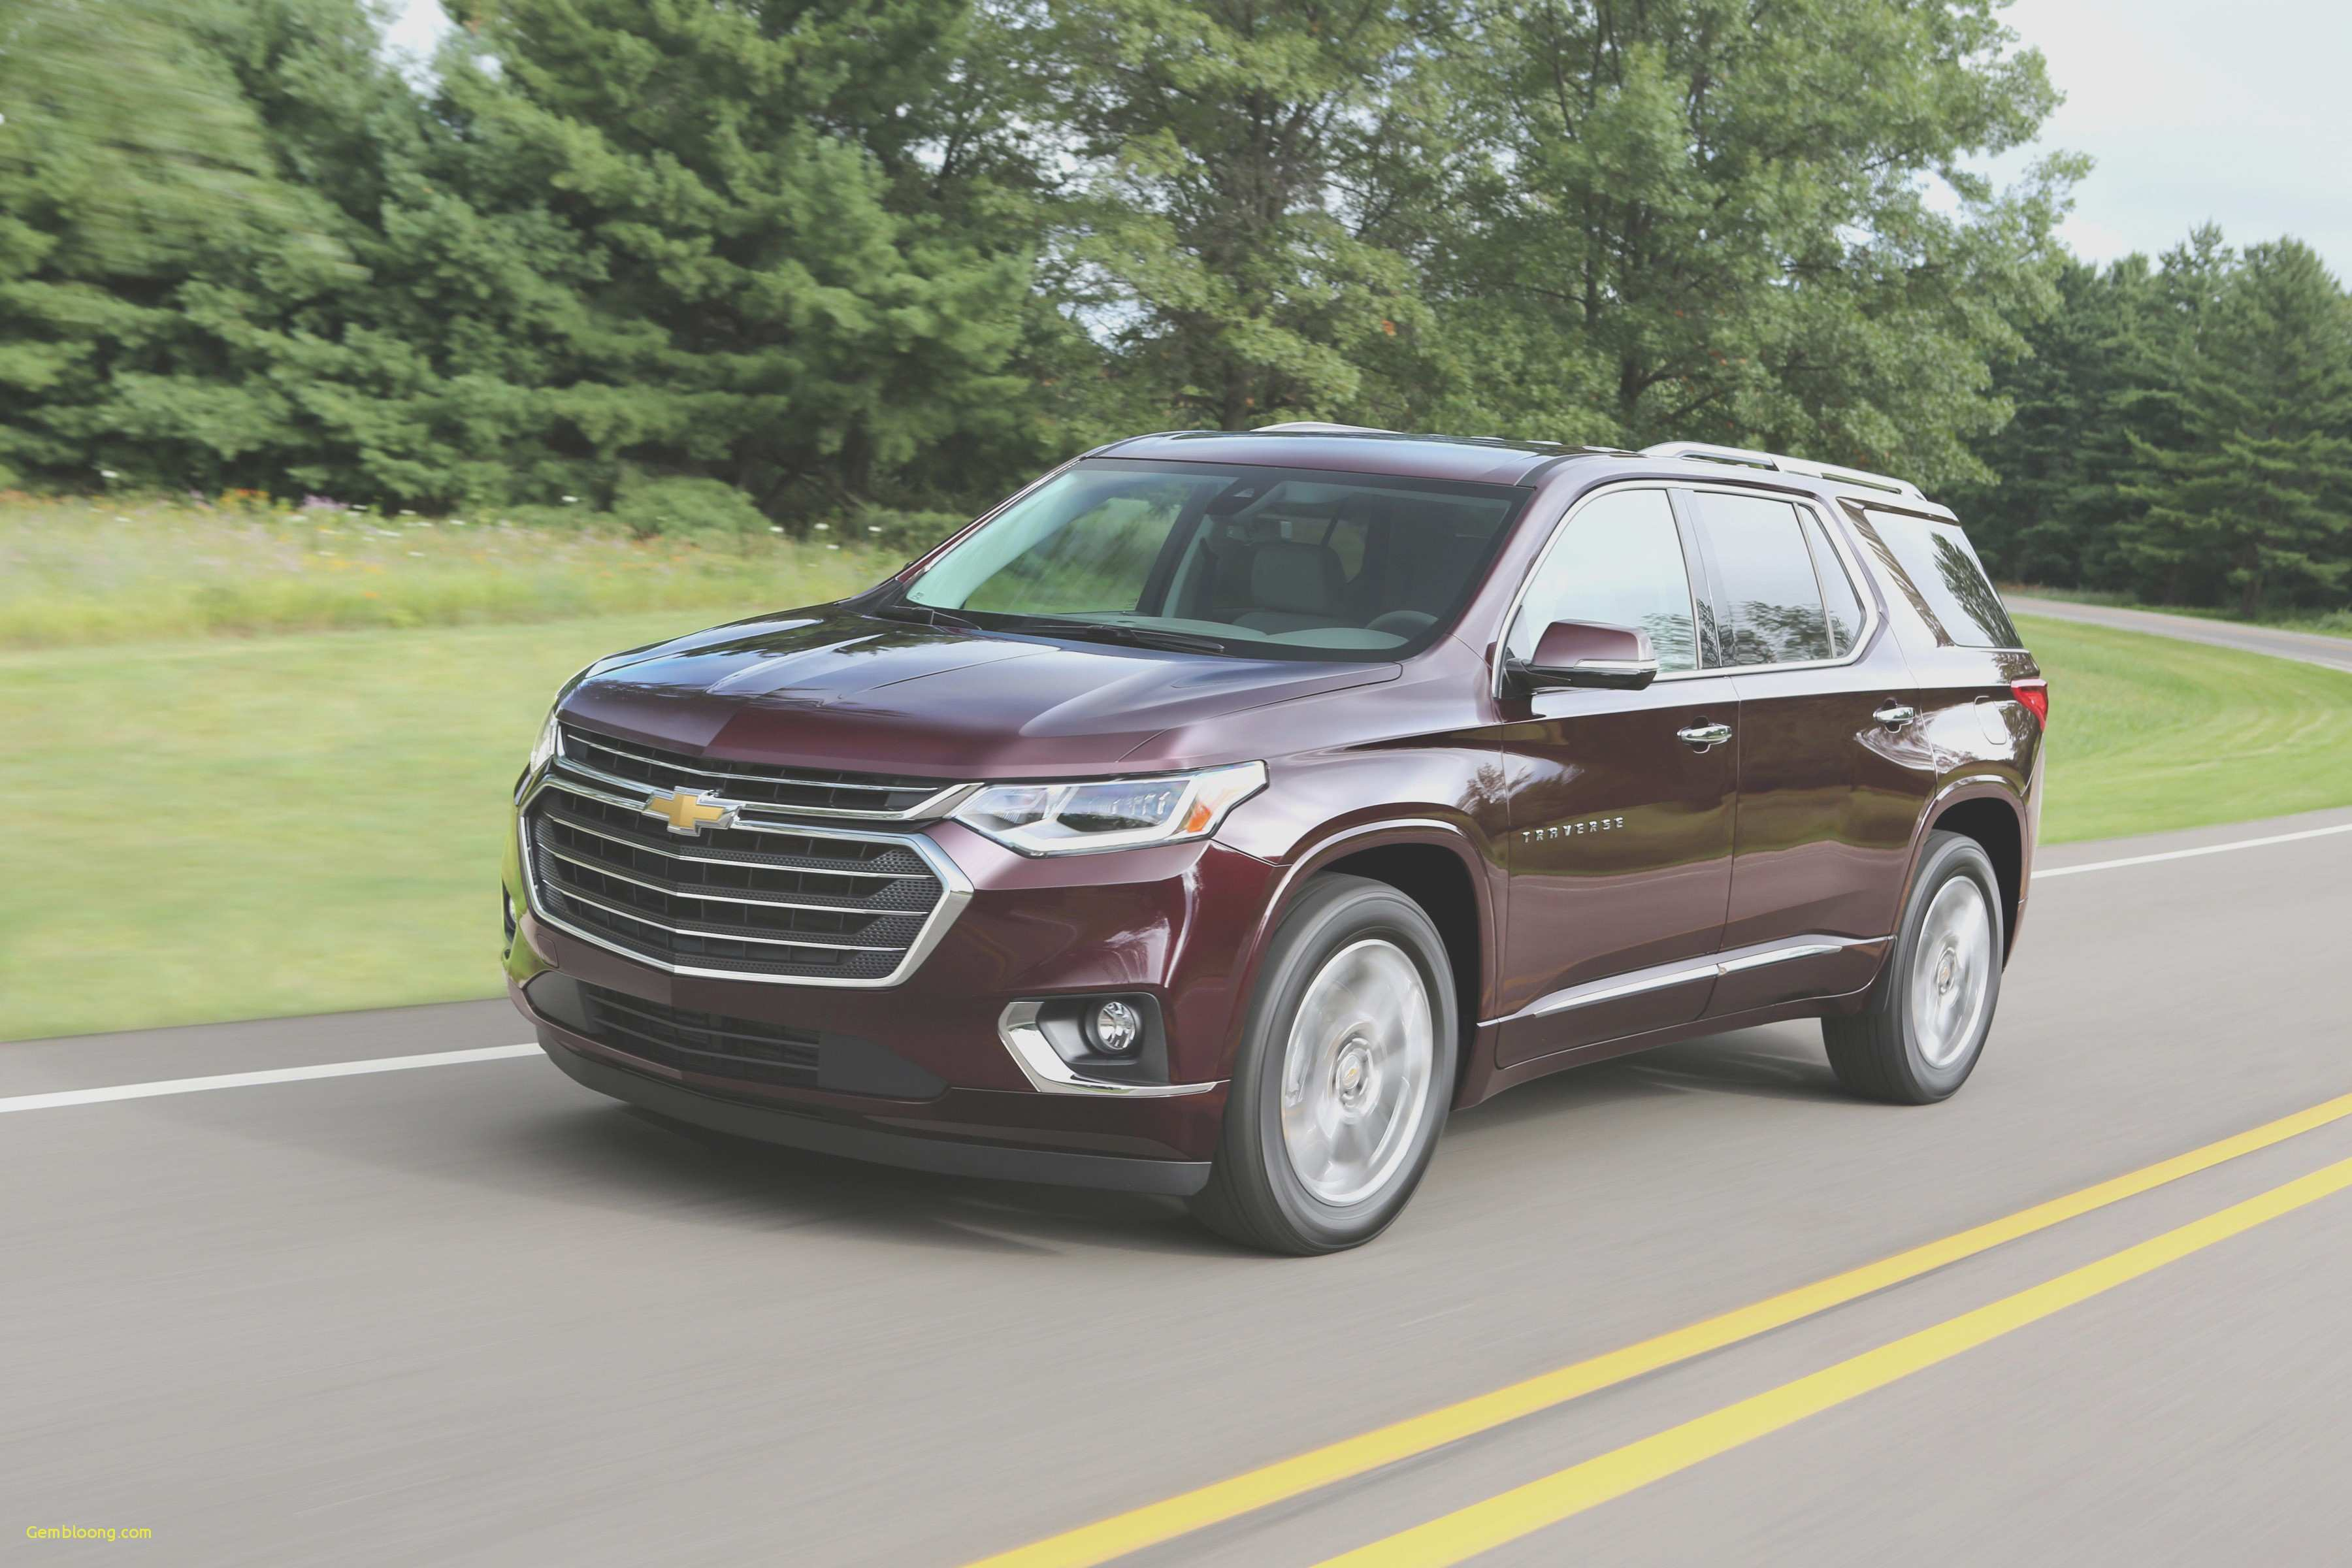 94 Best Review New Chevrolet 2019 Tahoe Concept Picture for New Chevrolet 2019 Tahoe Concept